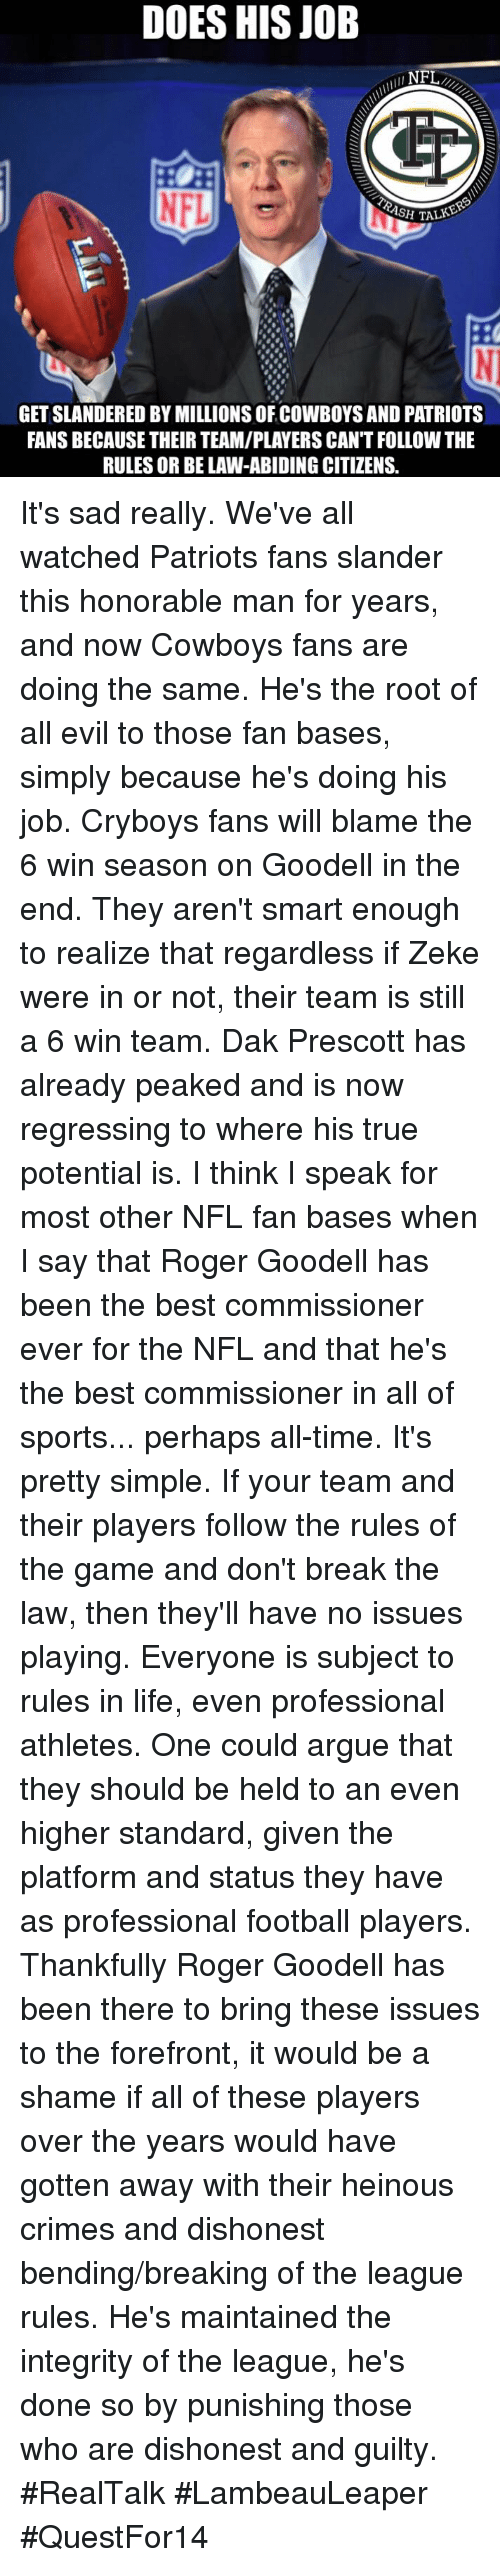 nfl fan: DOES HIS JOB  NFL  SH TALK  GET SLANDERED BY MILLIONS OFCOWBOYS AND PATRIOTS  FANS BECAUSE THEIR TEAM/PLAYERS CAN'T FOLLOW THE  RULES OR BE LAW-ABIDING CITIZENS. It's sad really. We've all watched Patriots fans slander this honorable man for years, and now Cowboys fans are doing the same. He's the root of all evil to those fan bases, simply because he's doing his job.   Cryboys fans will blame the 6 win season on Goodell in the end. They aren't smart enough to realize that regardless if Zeke were in or not, their team is still a 6 win team. Dak Prescott has already peaked and is now regressing to where his true potential is.   I think I speak for most other NFL fan bases when I say that Roger Goodell has been the best commissioner ever for the NFL and that he's the best commissioner in all of sports... perhaps all-time. It's pretty simple. If your team and their players follow the rules of the game and don't break the law, then they'll have no issues playing.   Everyone is subject to rules in life, even professional athletes. One could argue that they should be held to an even higher standard, given the platform and status they have as professional football players.   Thankfully Roger Goodell has been there to bring these issues to the forefront, it would be a shame if all of these players over the years would have gotten away with their heinous crimes and dishonest bending/breaking of the league rules. He's maintained the integrity of the league, he's done so by punishing those who are dishonest and guilty. #RealTalk   #LambeauLeaper #QuestFor14